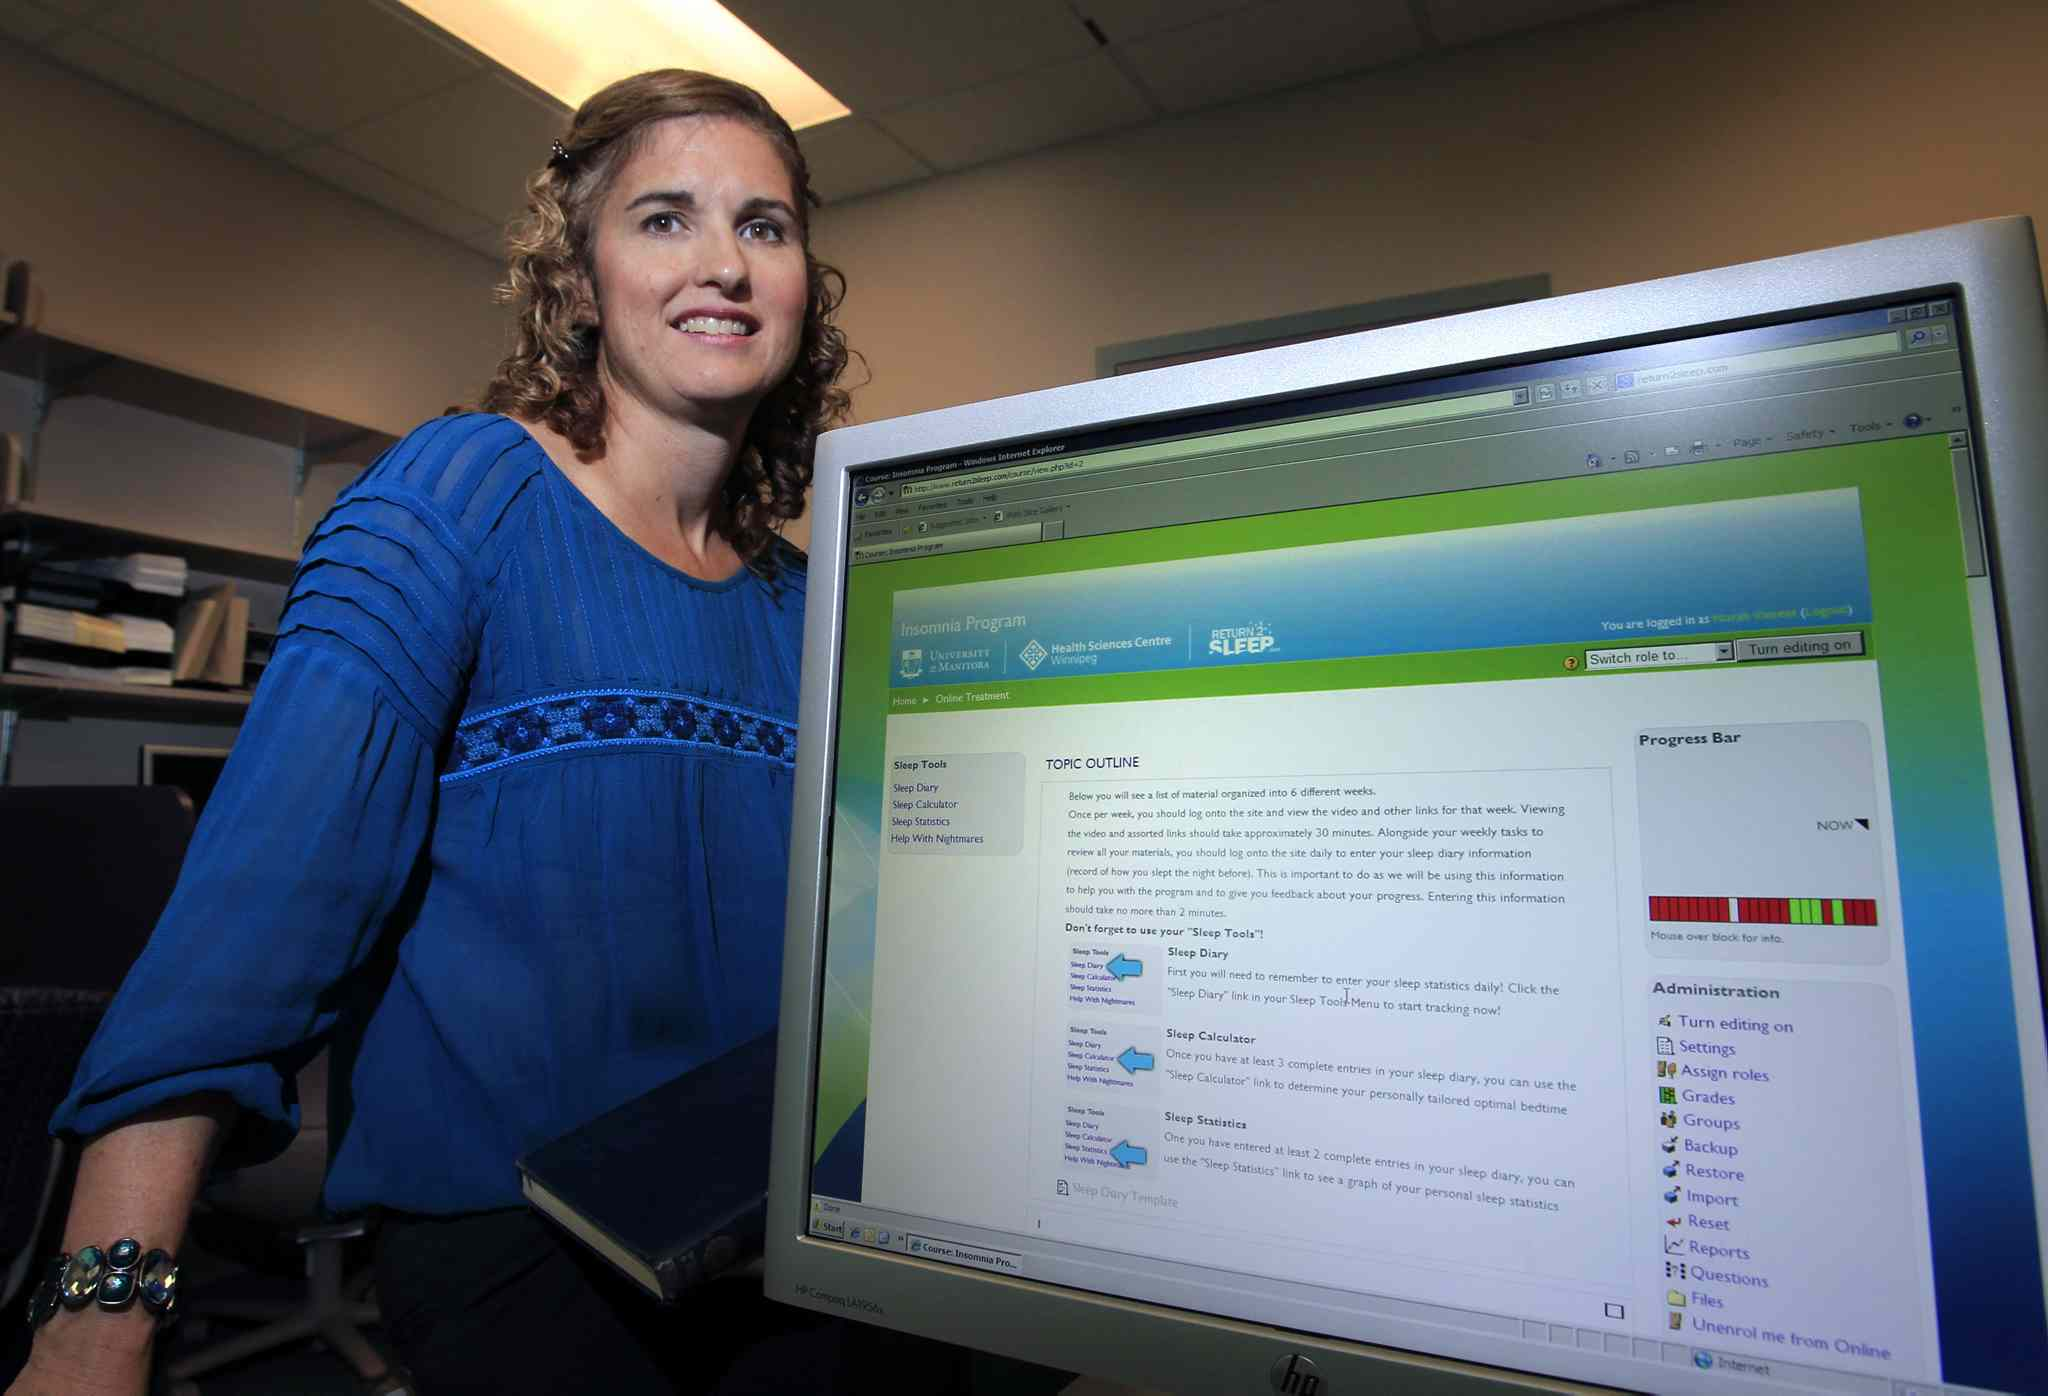 Dr. Norah Vincent will be speaking at a U of M symposium about a web program she developed to help people with insomnia.